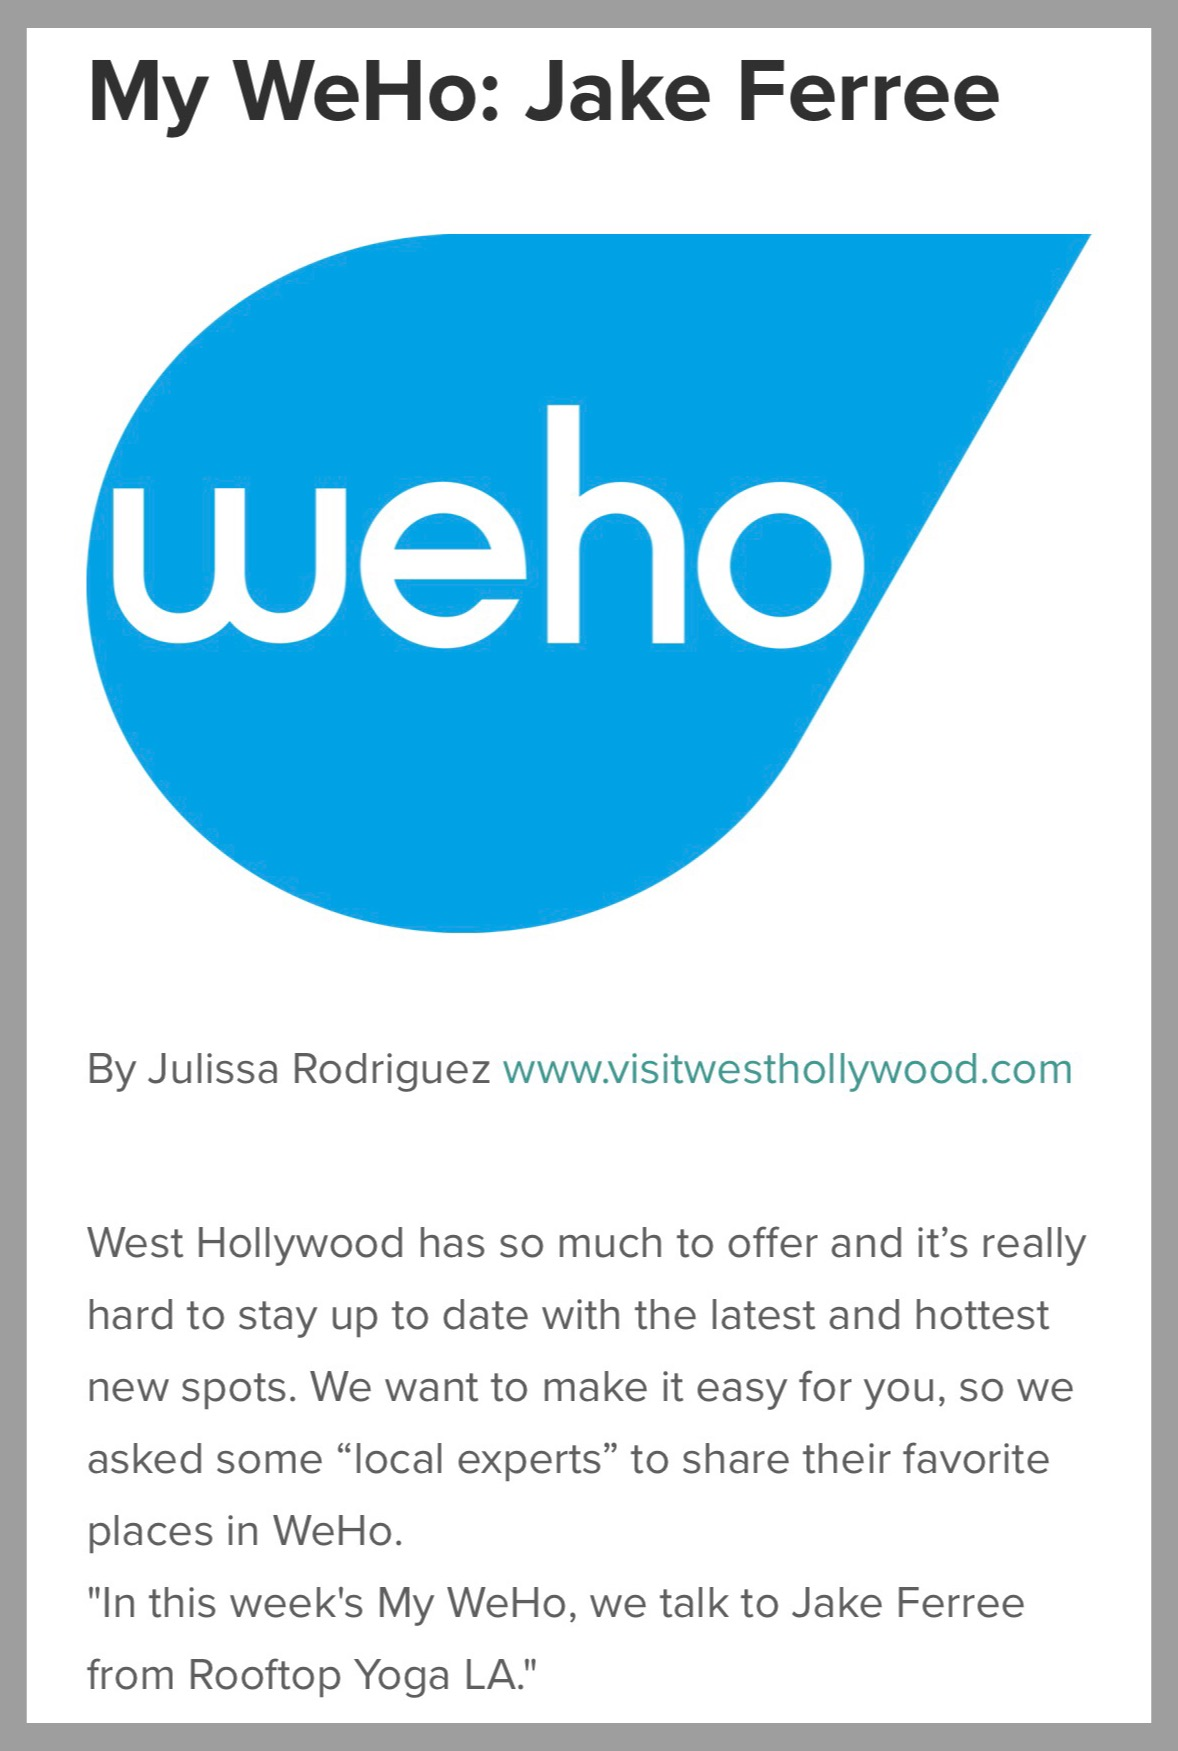 VISIT WEST HOLLYWOOD ARTICLE